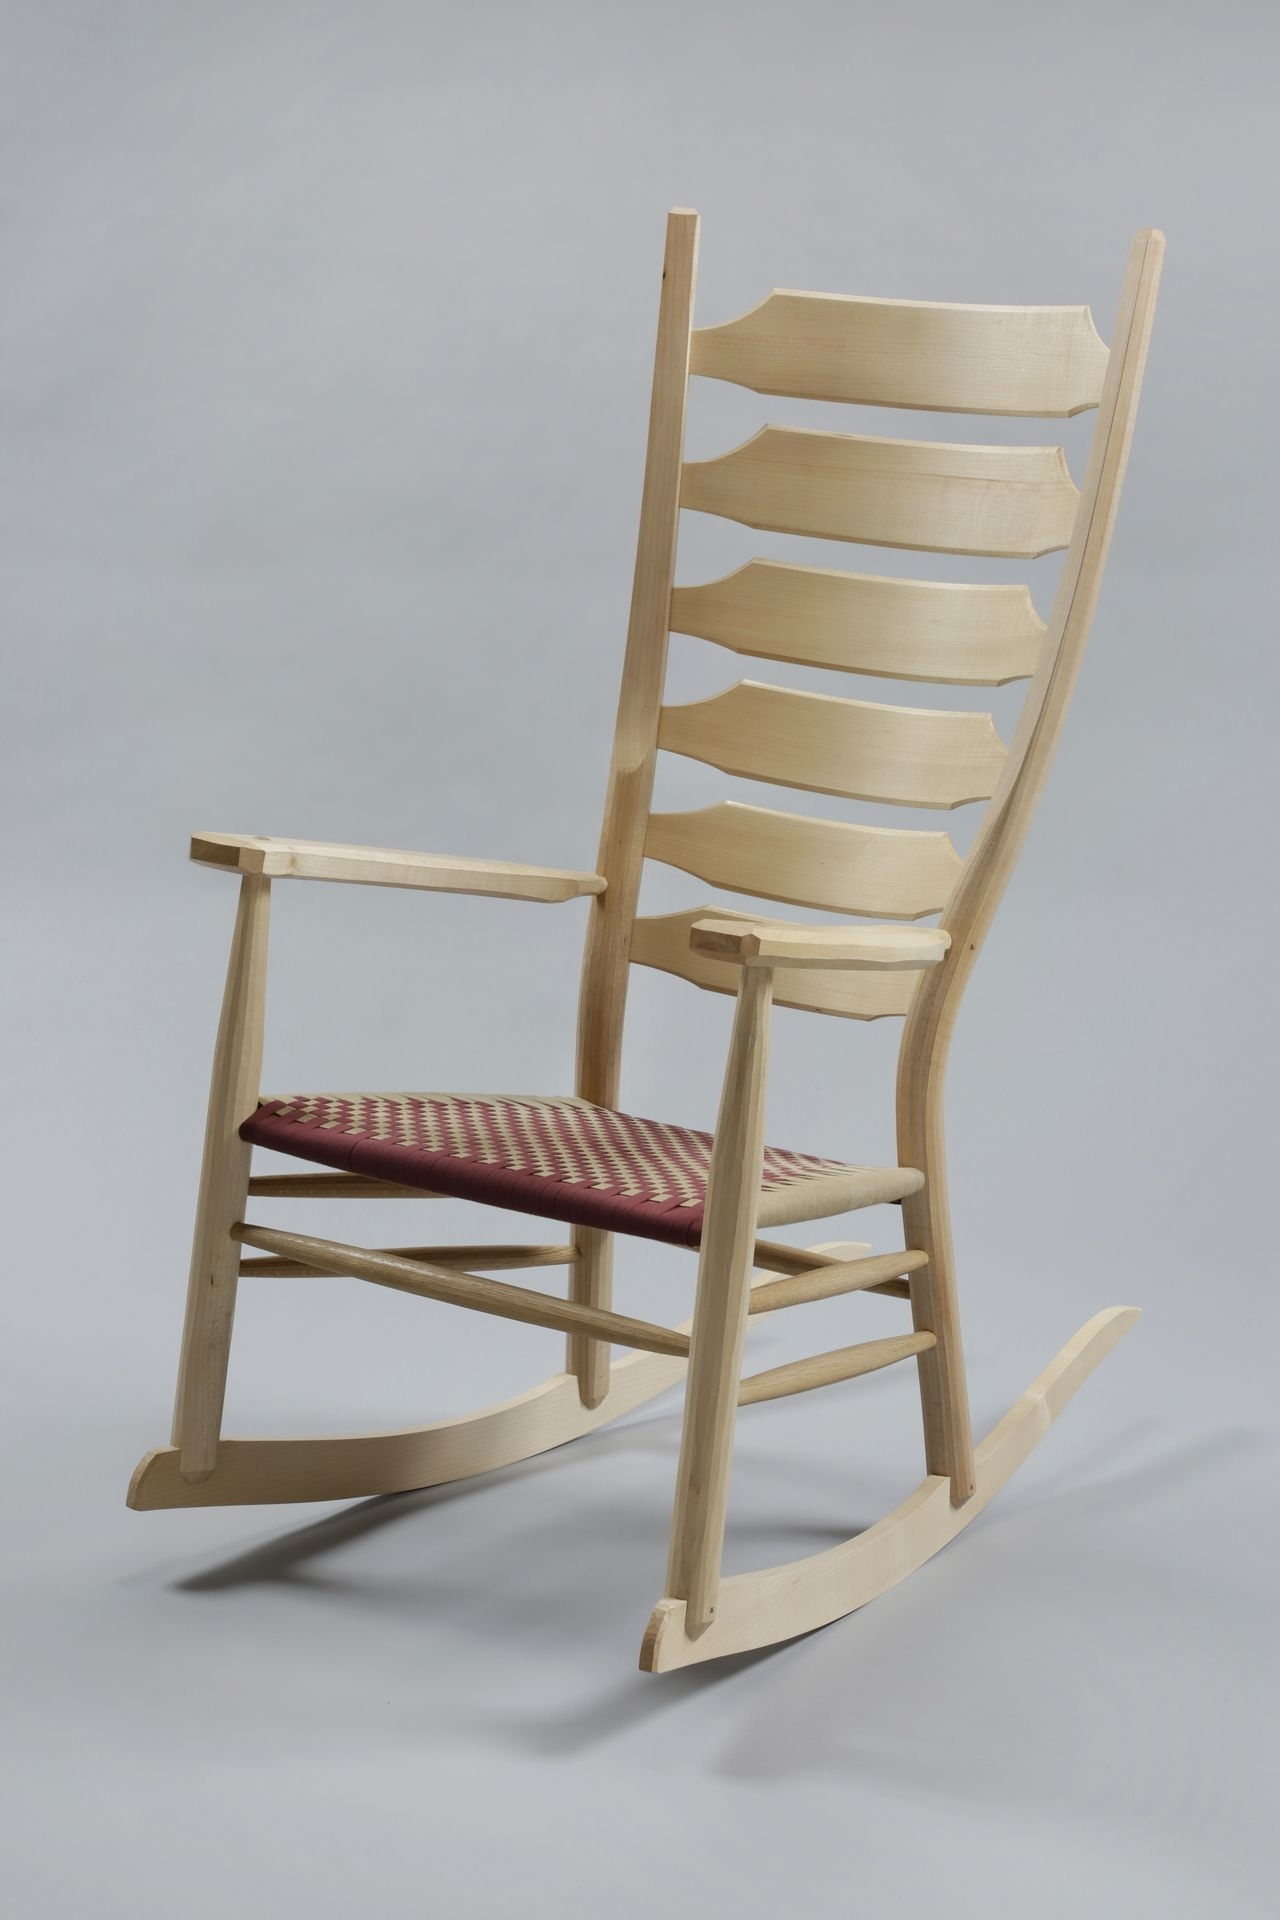 Famous Rocking Chairs At Gumtree With Regard To Gumtree Rocking Chair #e53B7B7B0C50 – Draxysoft (View 6 of 20)